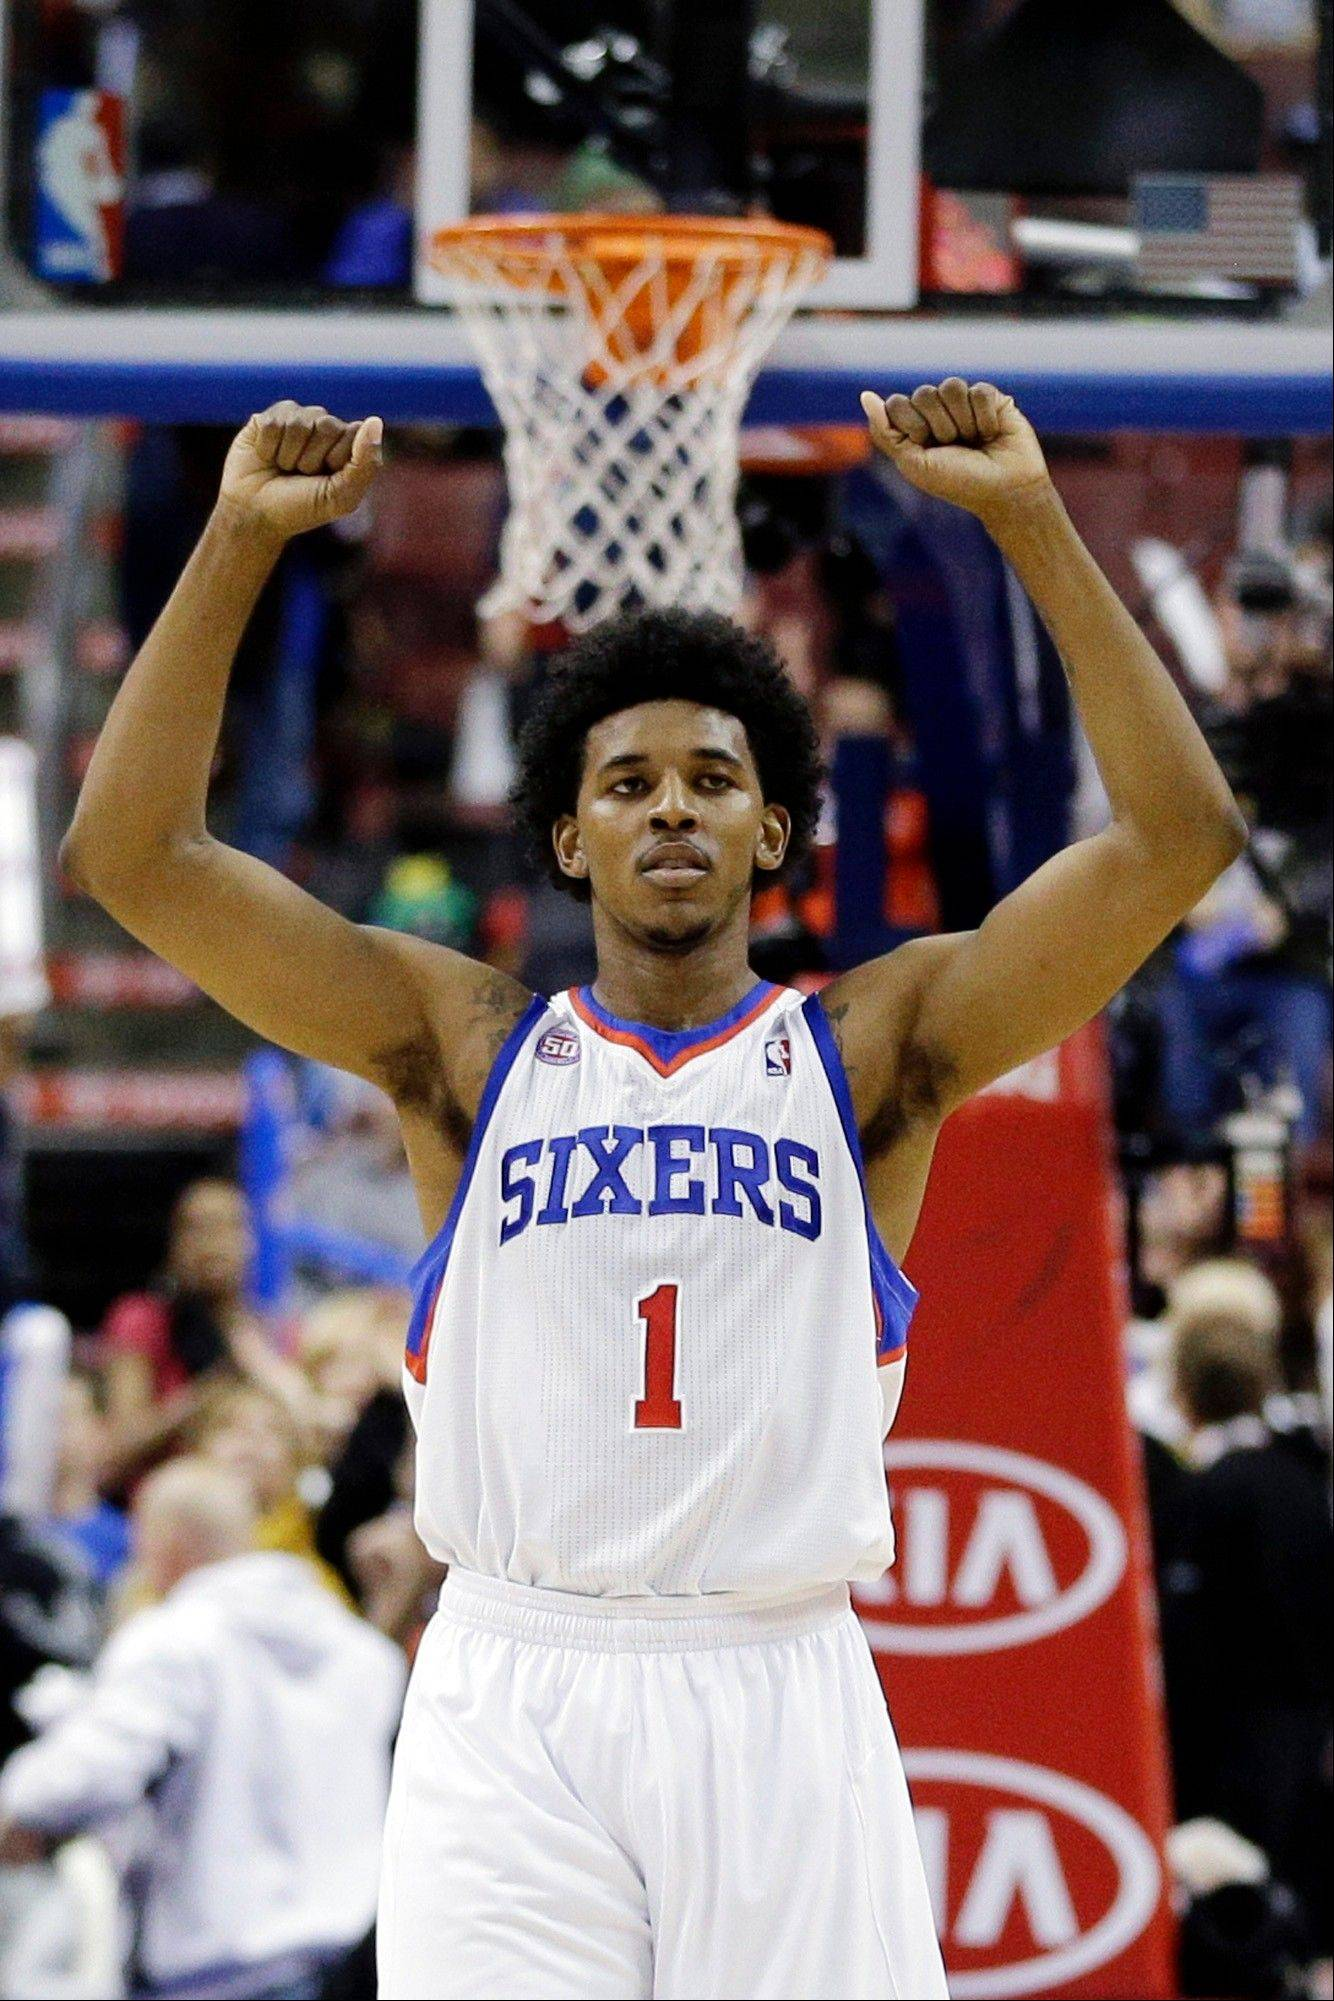 The Philadelphia 76ers' Nick Young reacts to a score Tuesday during the second half against the Toronto Raptors in Philadelphia. Philadelphia won 106-98.